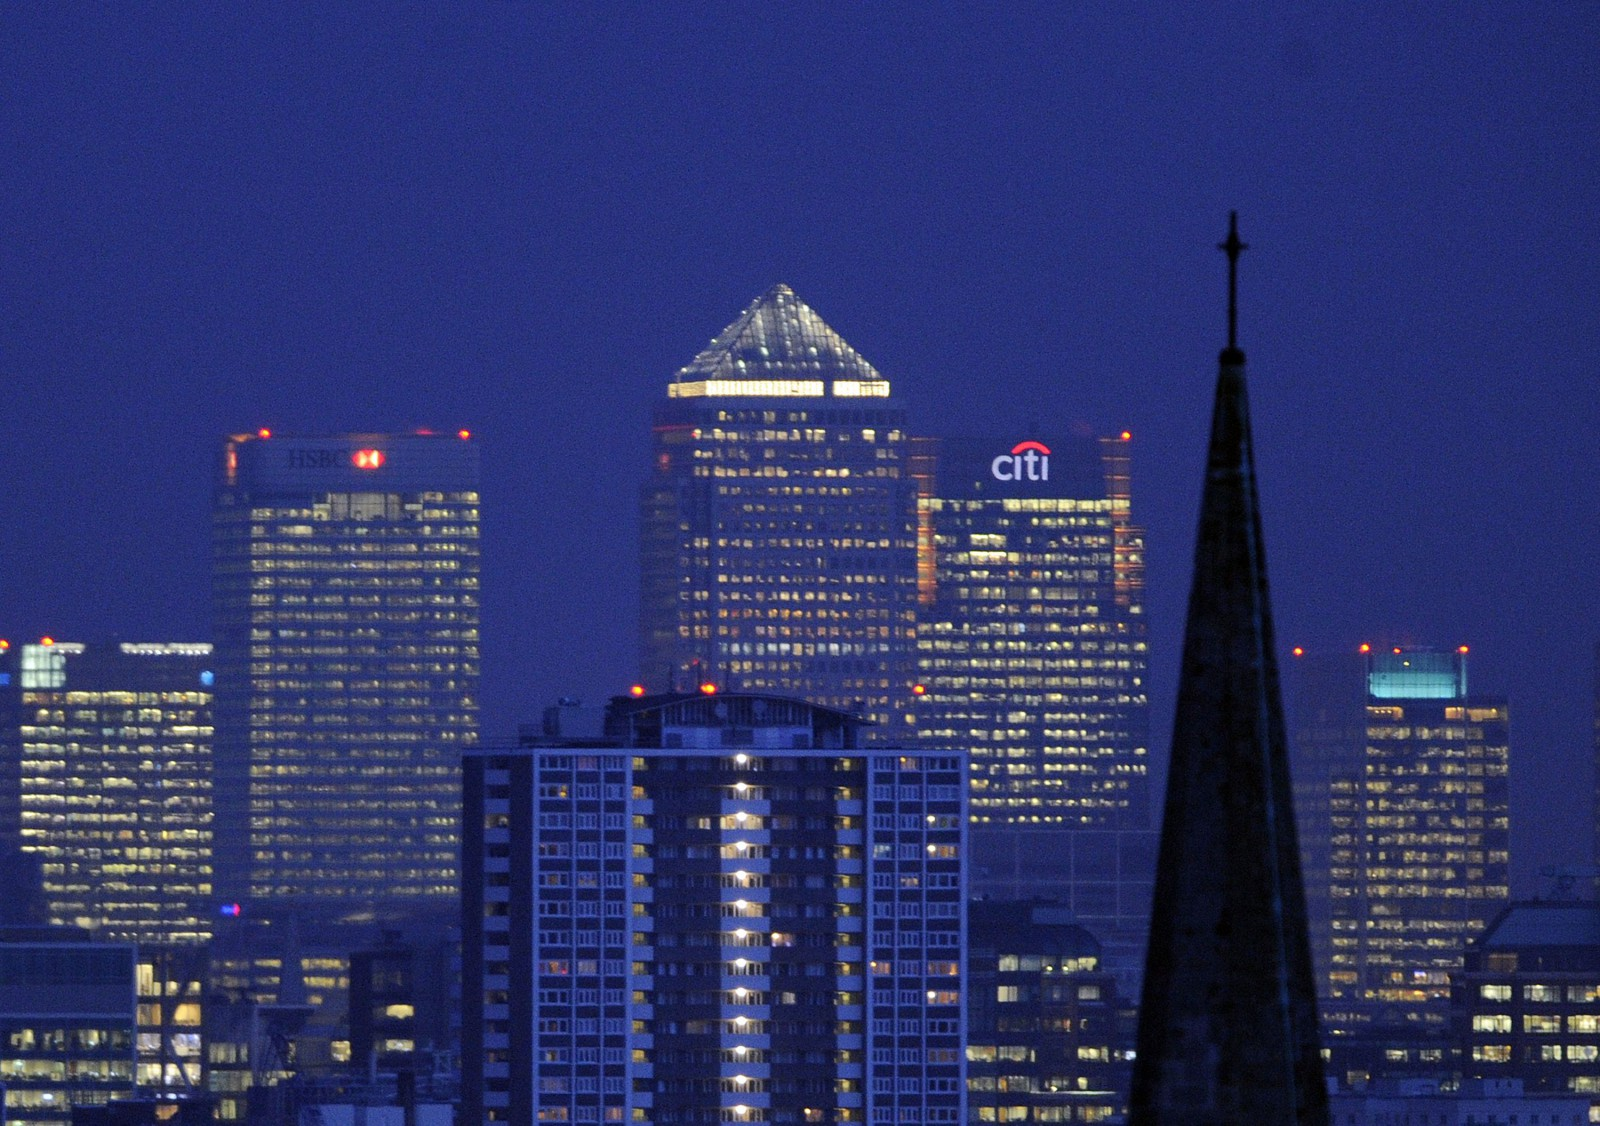 London's financial district seen at night.